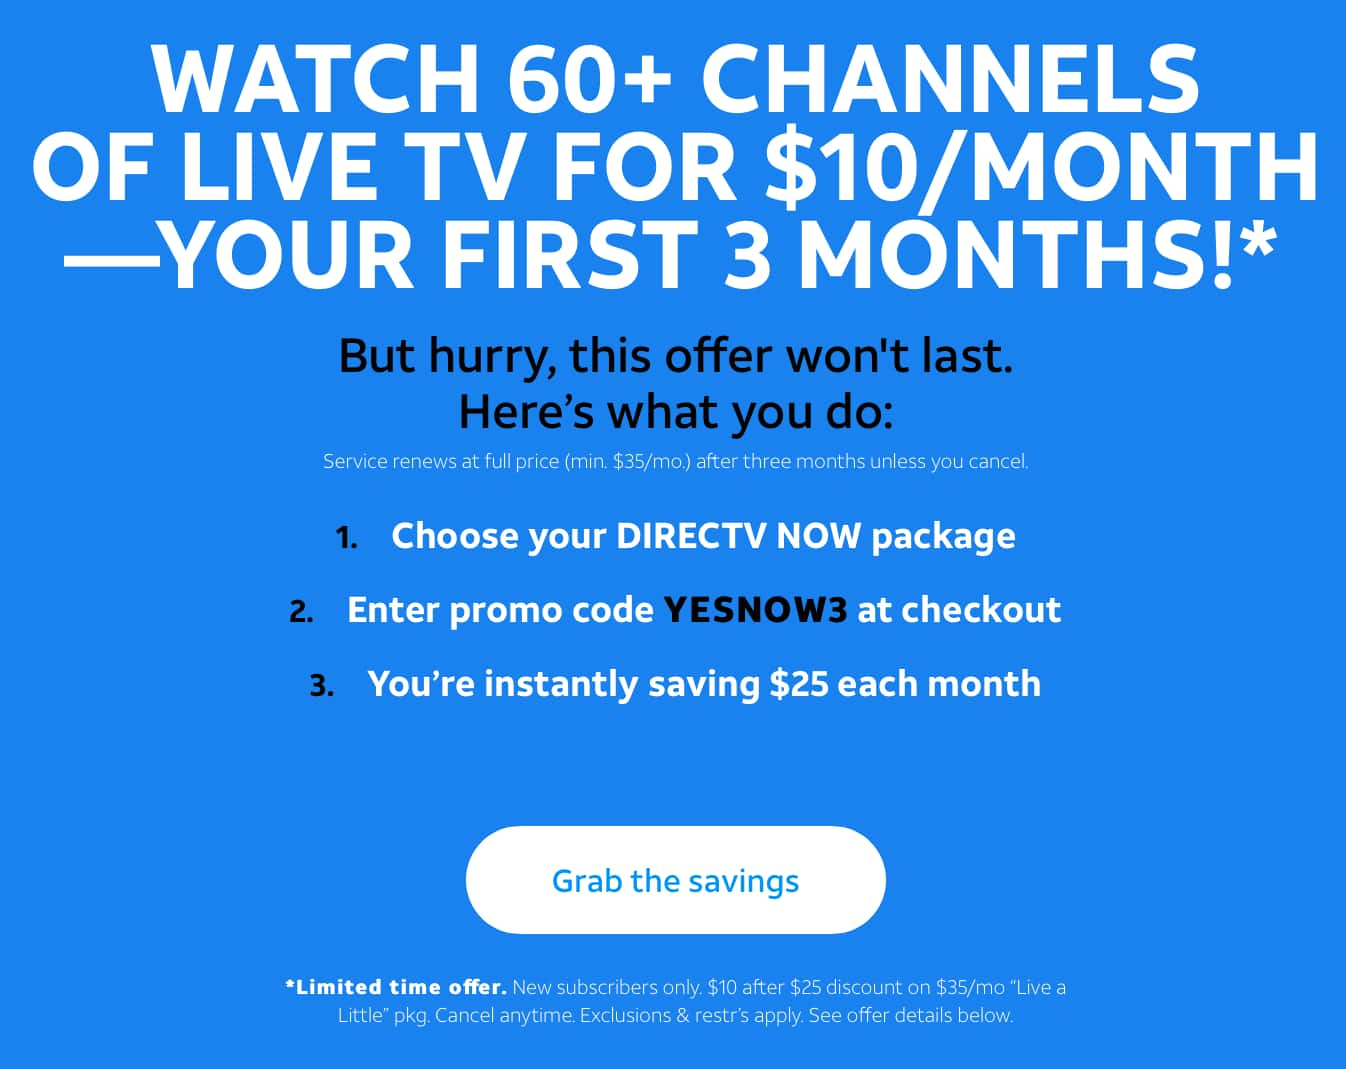 Directv Now $10/month for three months